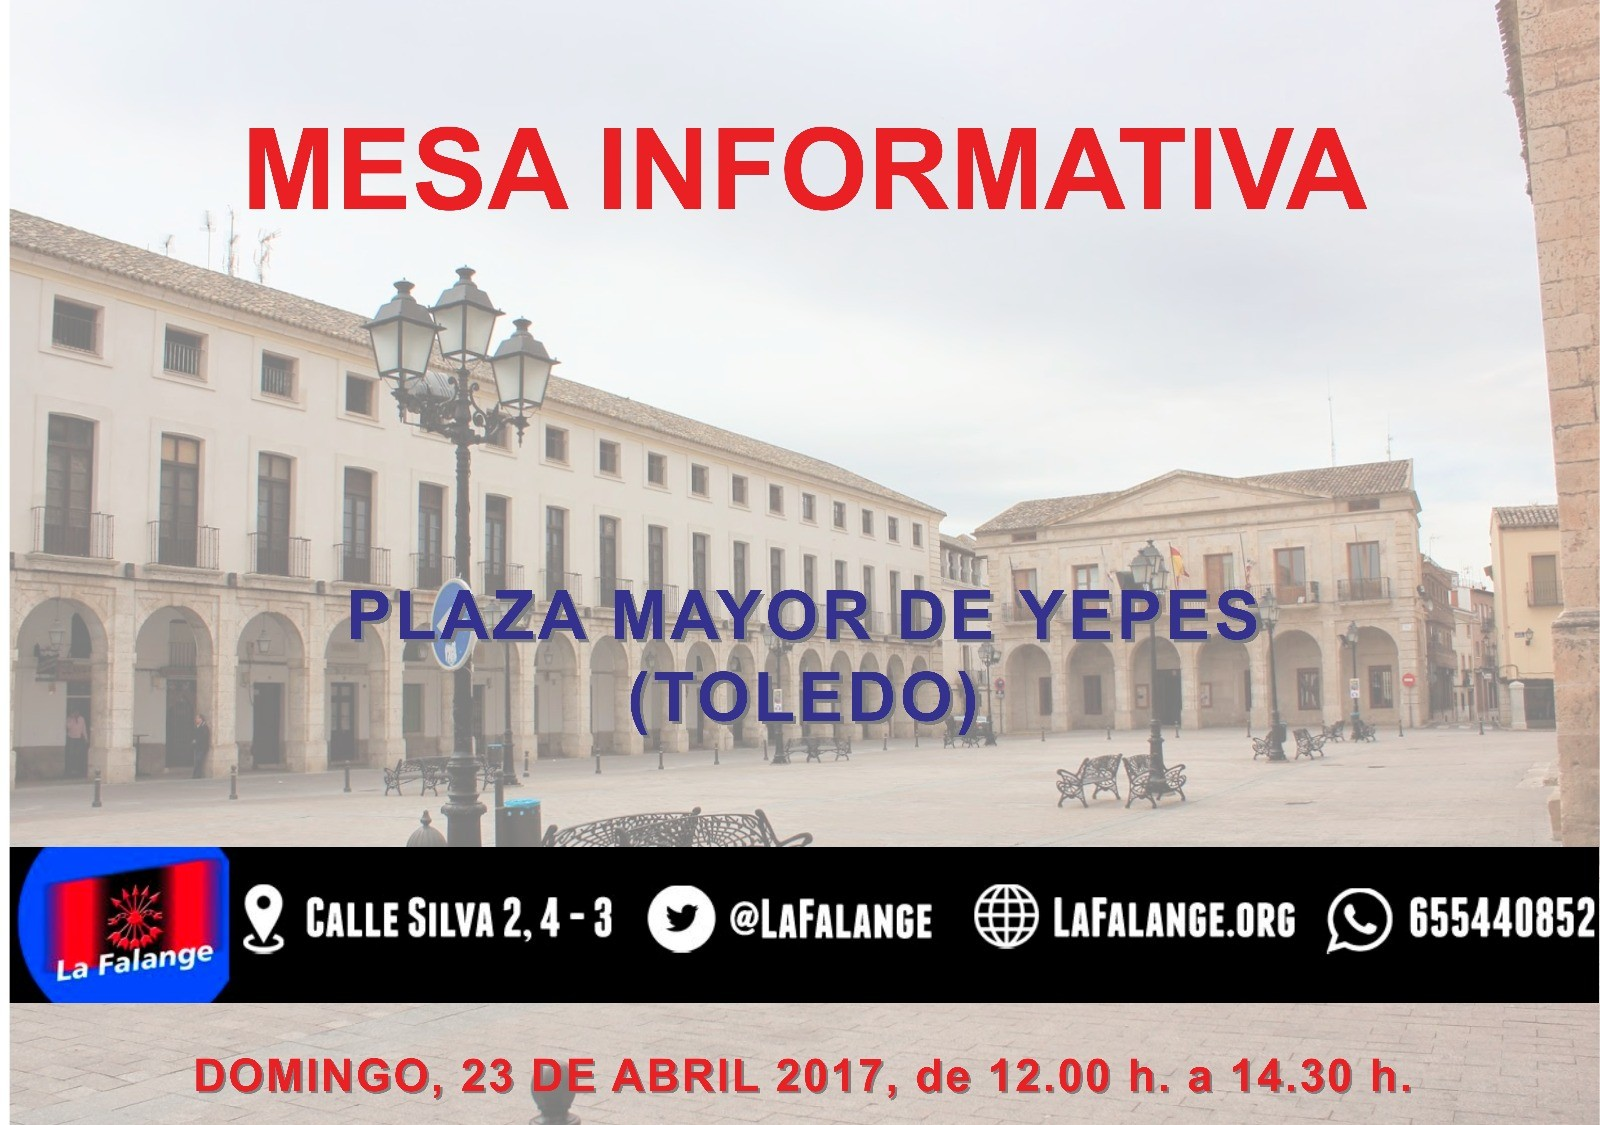 Mesa informativa en Toledo Domingo 23 Abril Plaza Mayor de Yepes de 12:00 a 14:30 h.